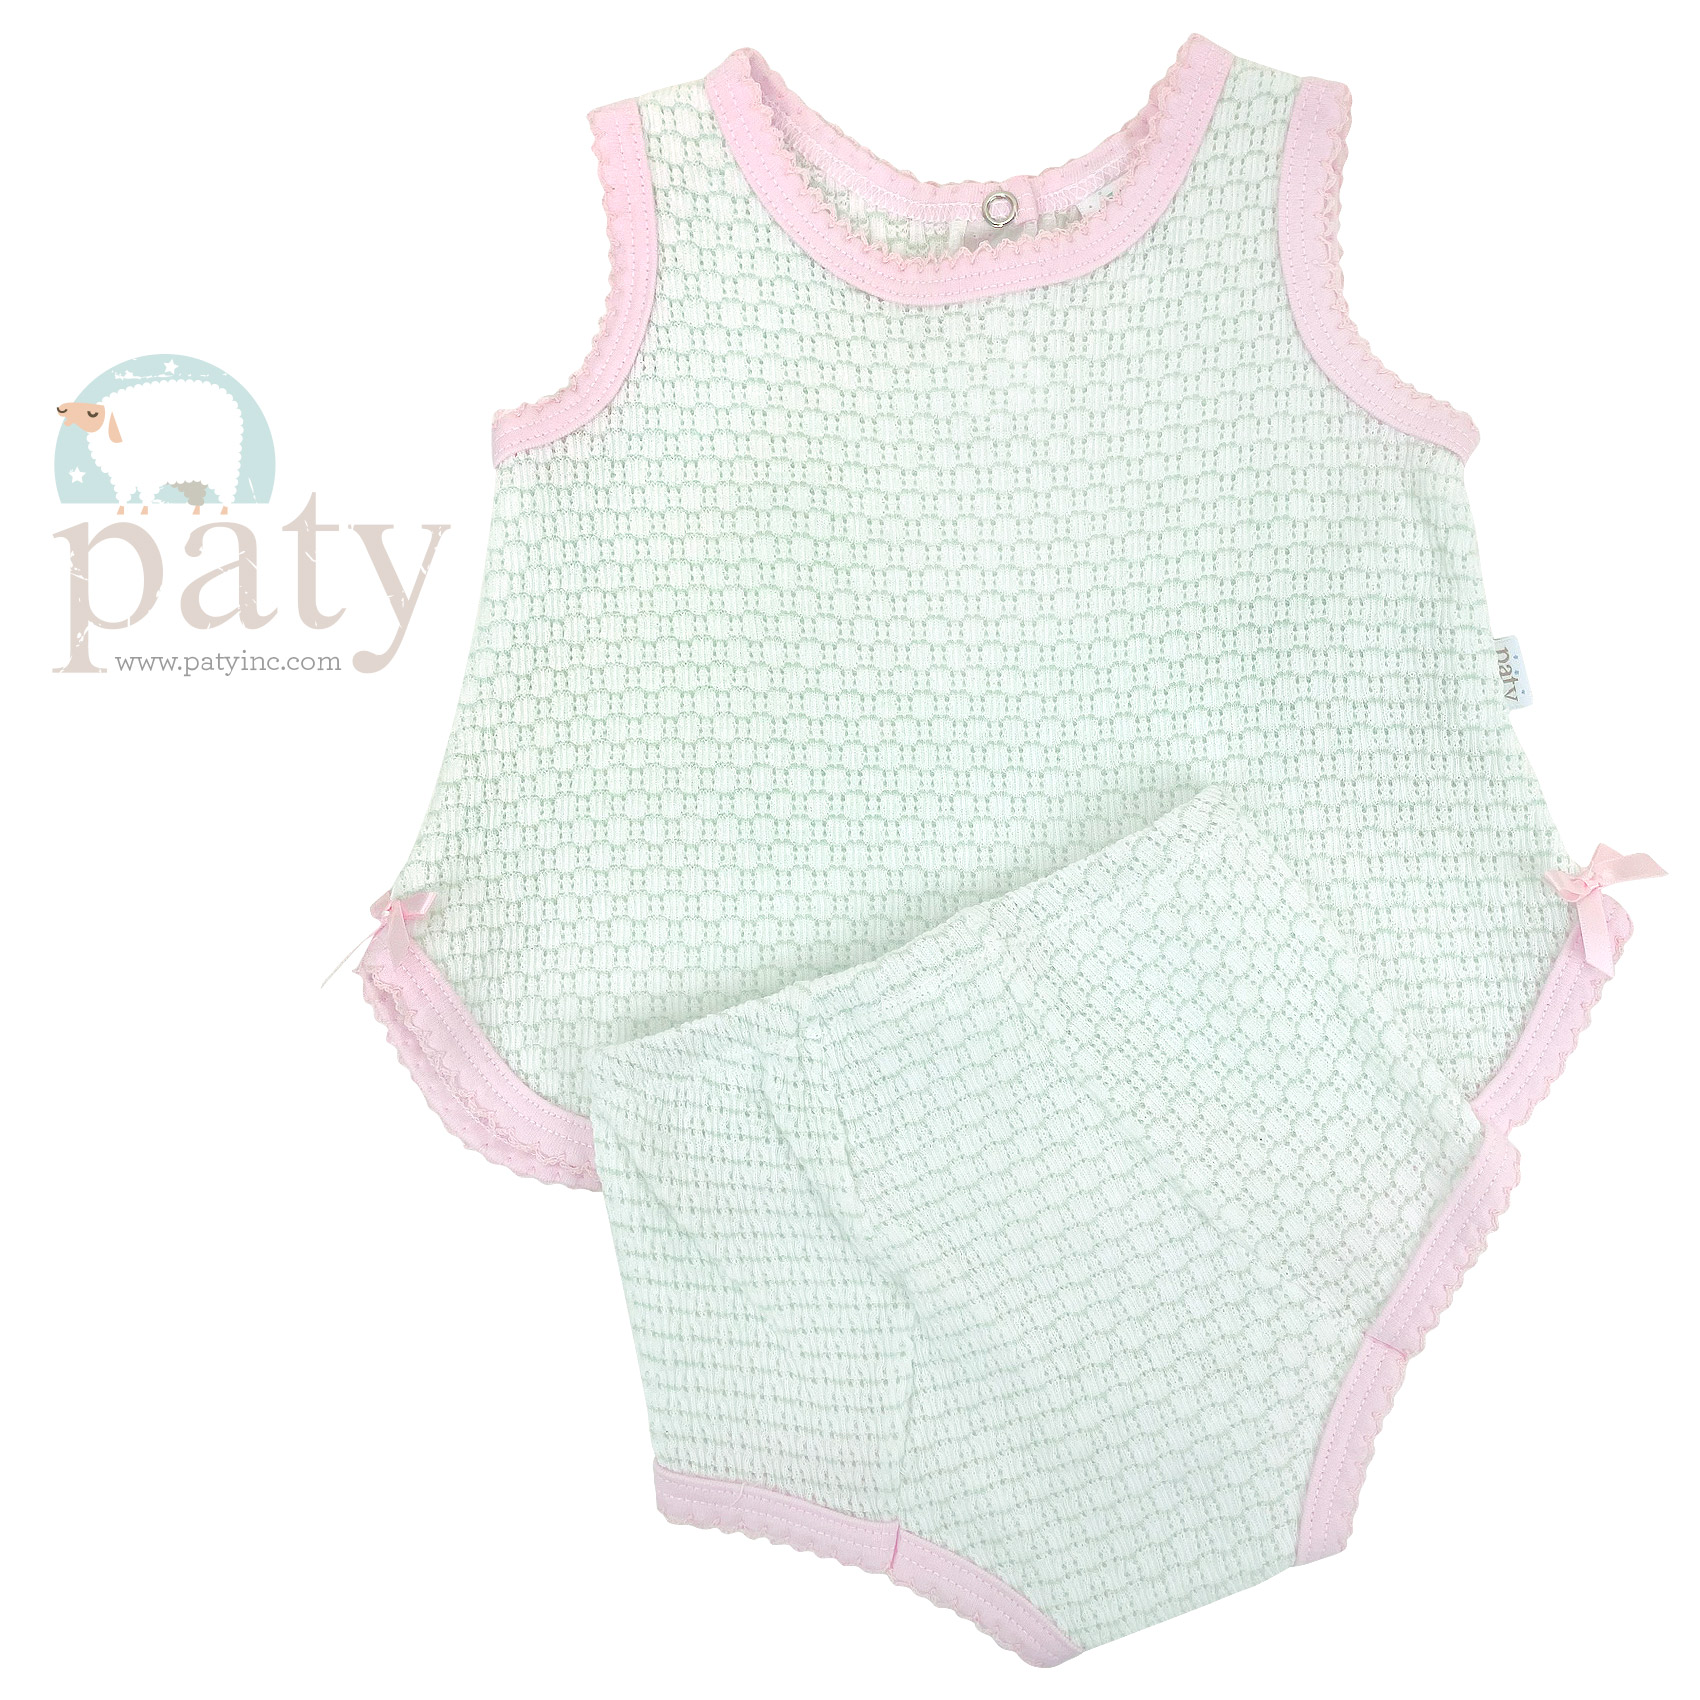 Paty Pinstripe 2 PC Set, Sleeveless Top with Trim Options and Diaper Cover